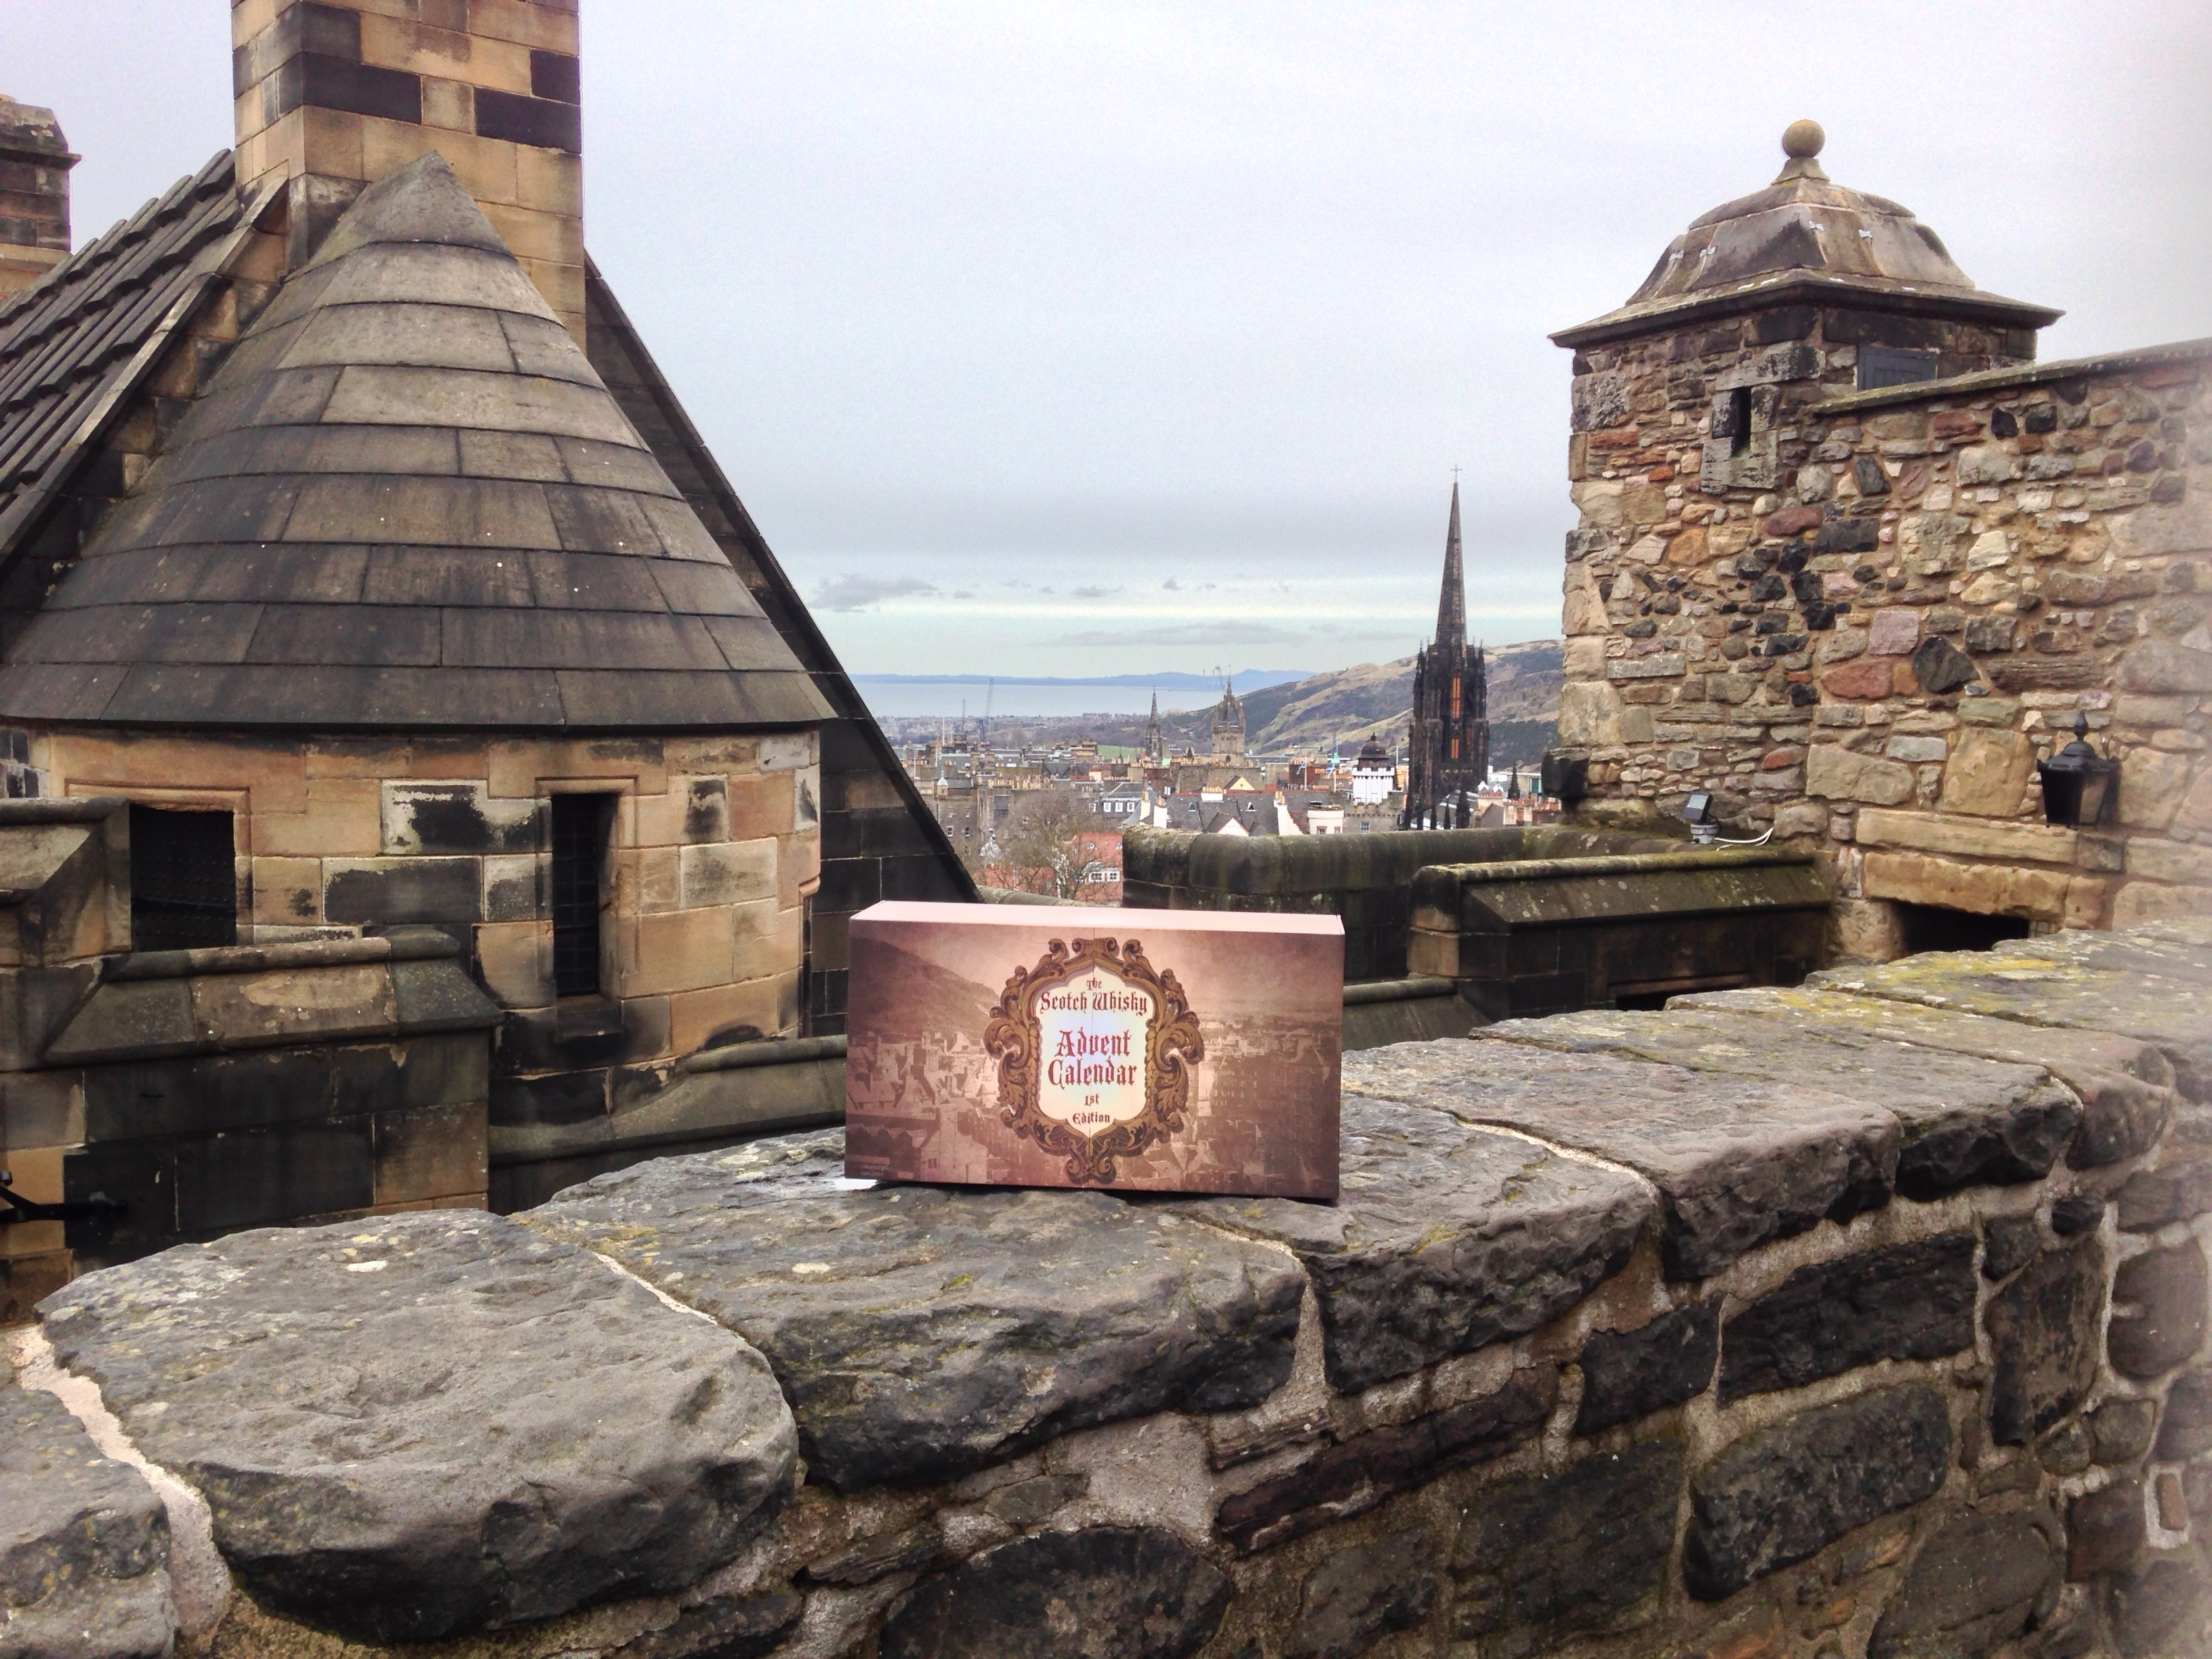 The Scotch Whisky Advent Calendar at Edinburgh Castle, Scotland